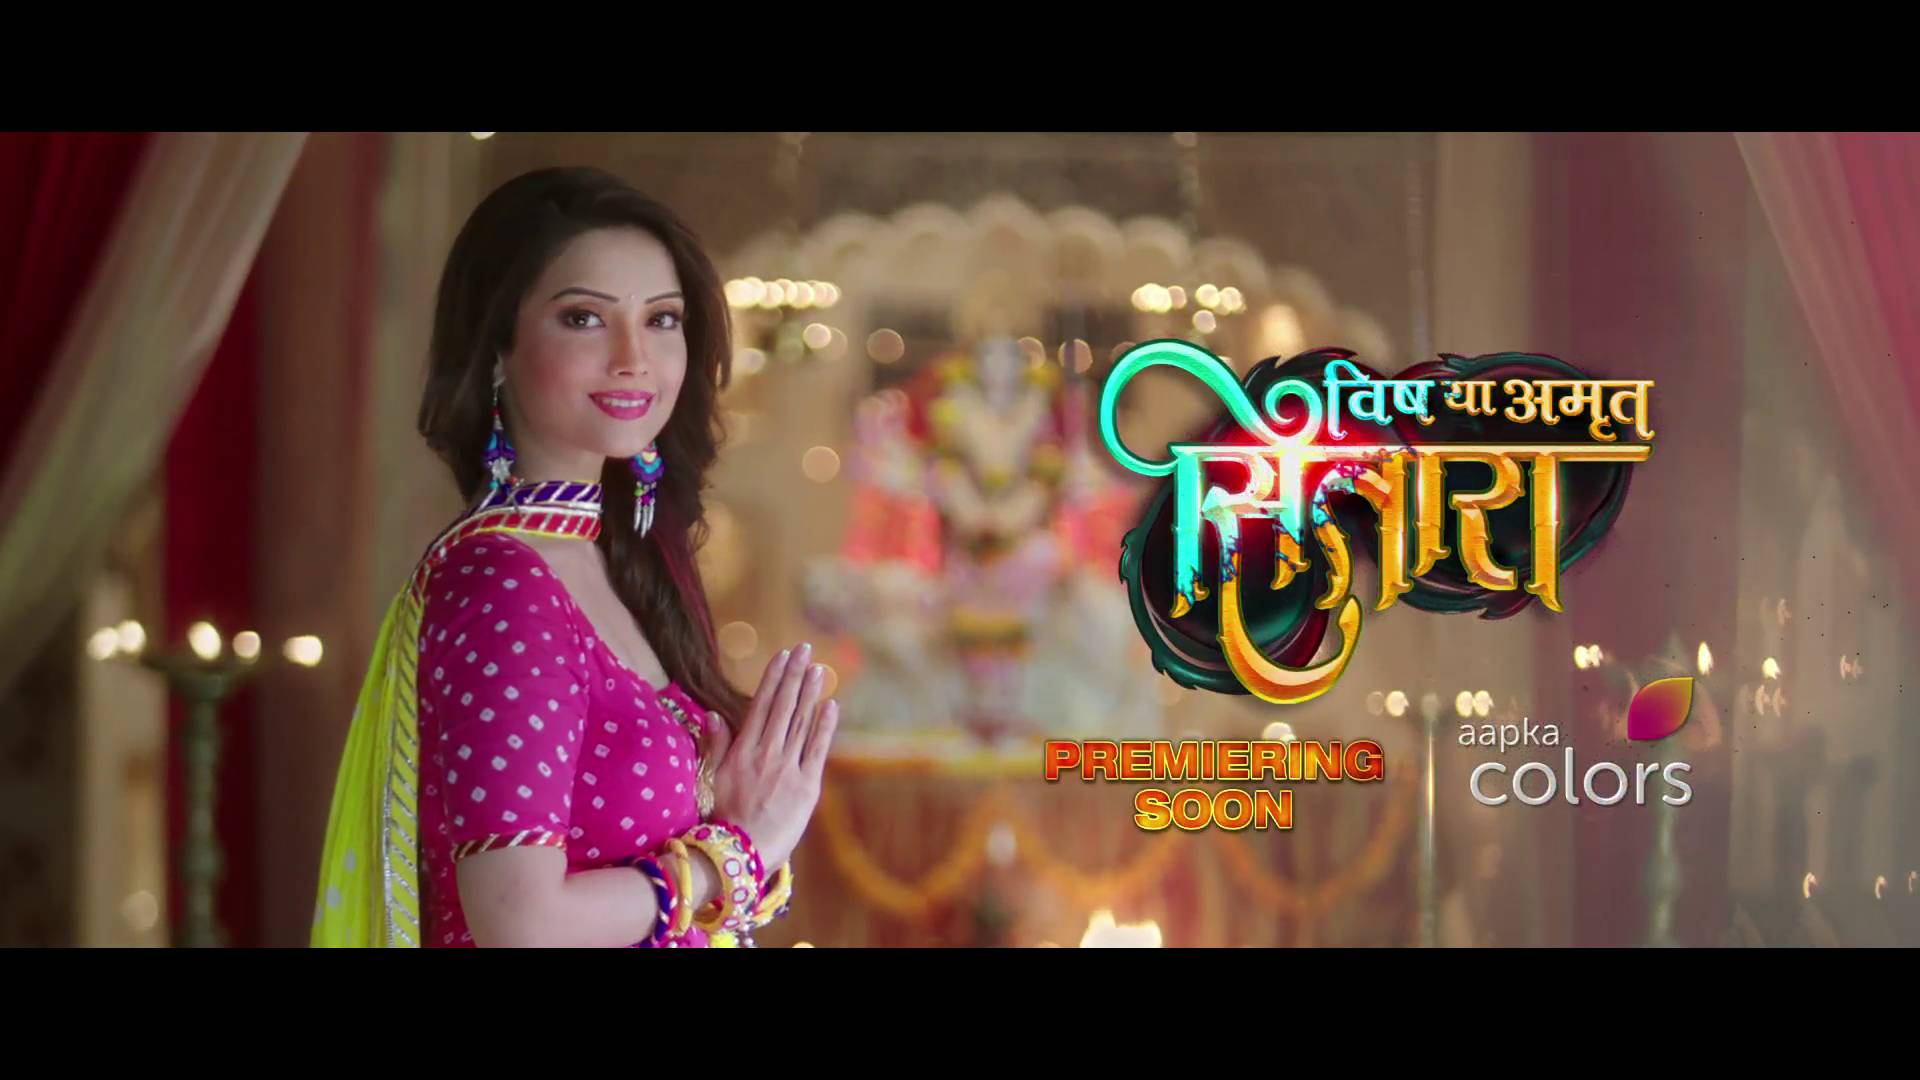 Vish Ya Amrit Sitara Premiering Soon Only On Aapka Colors